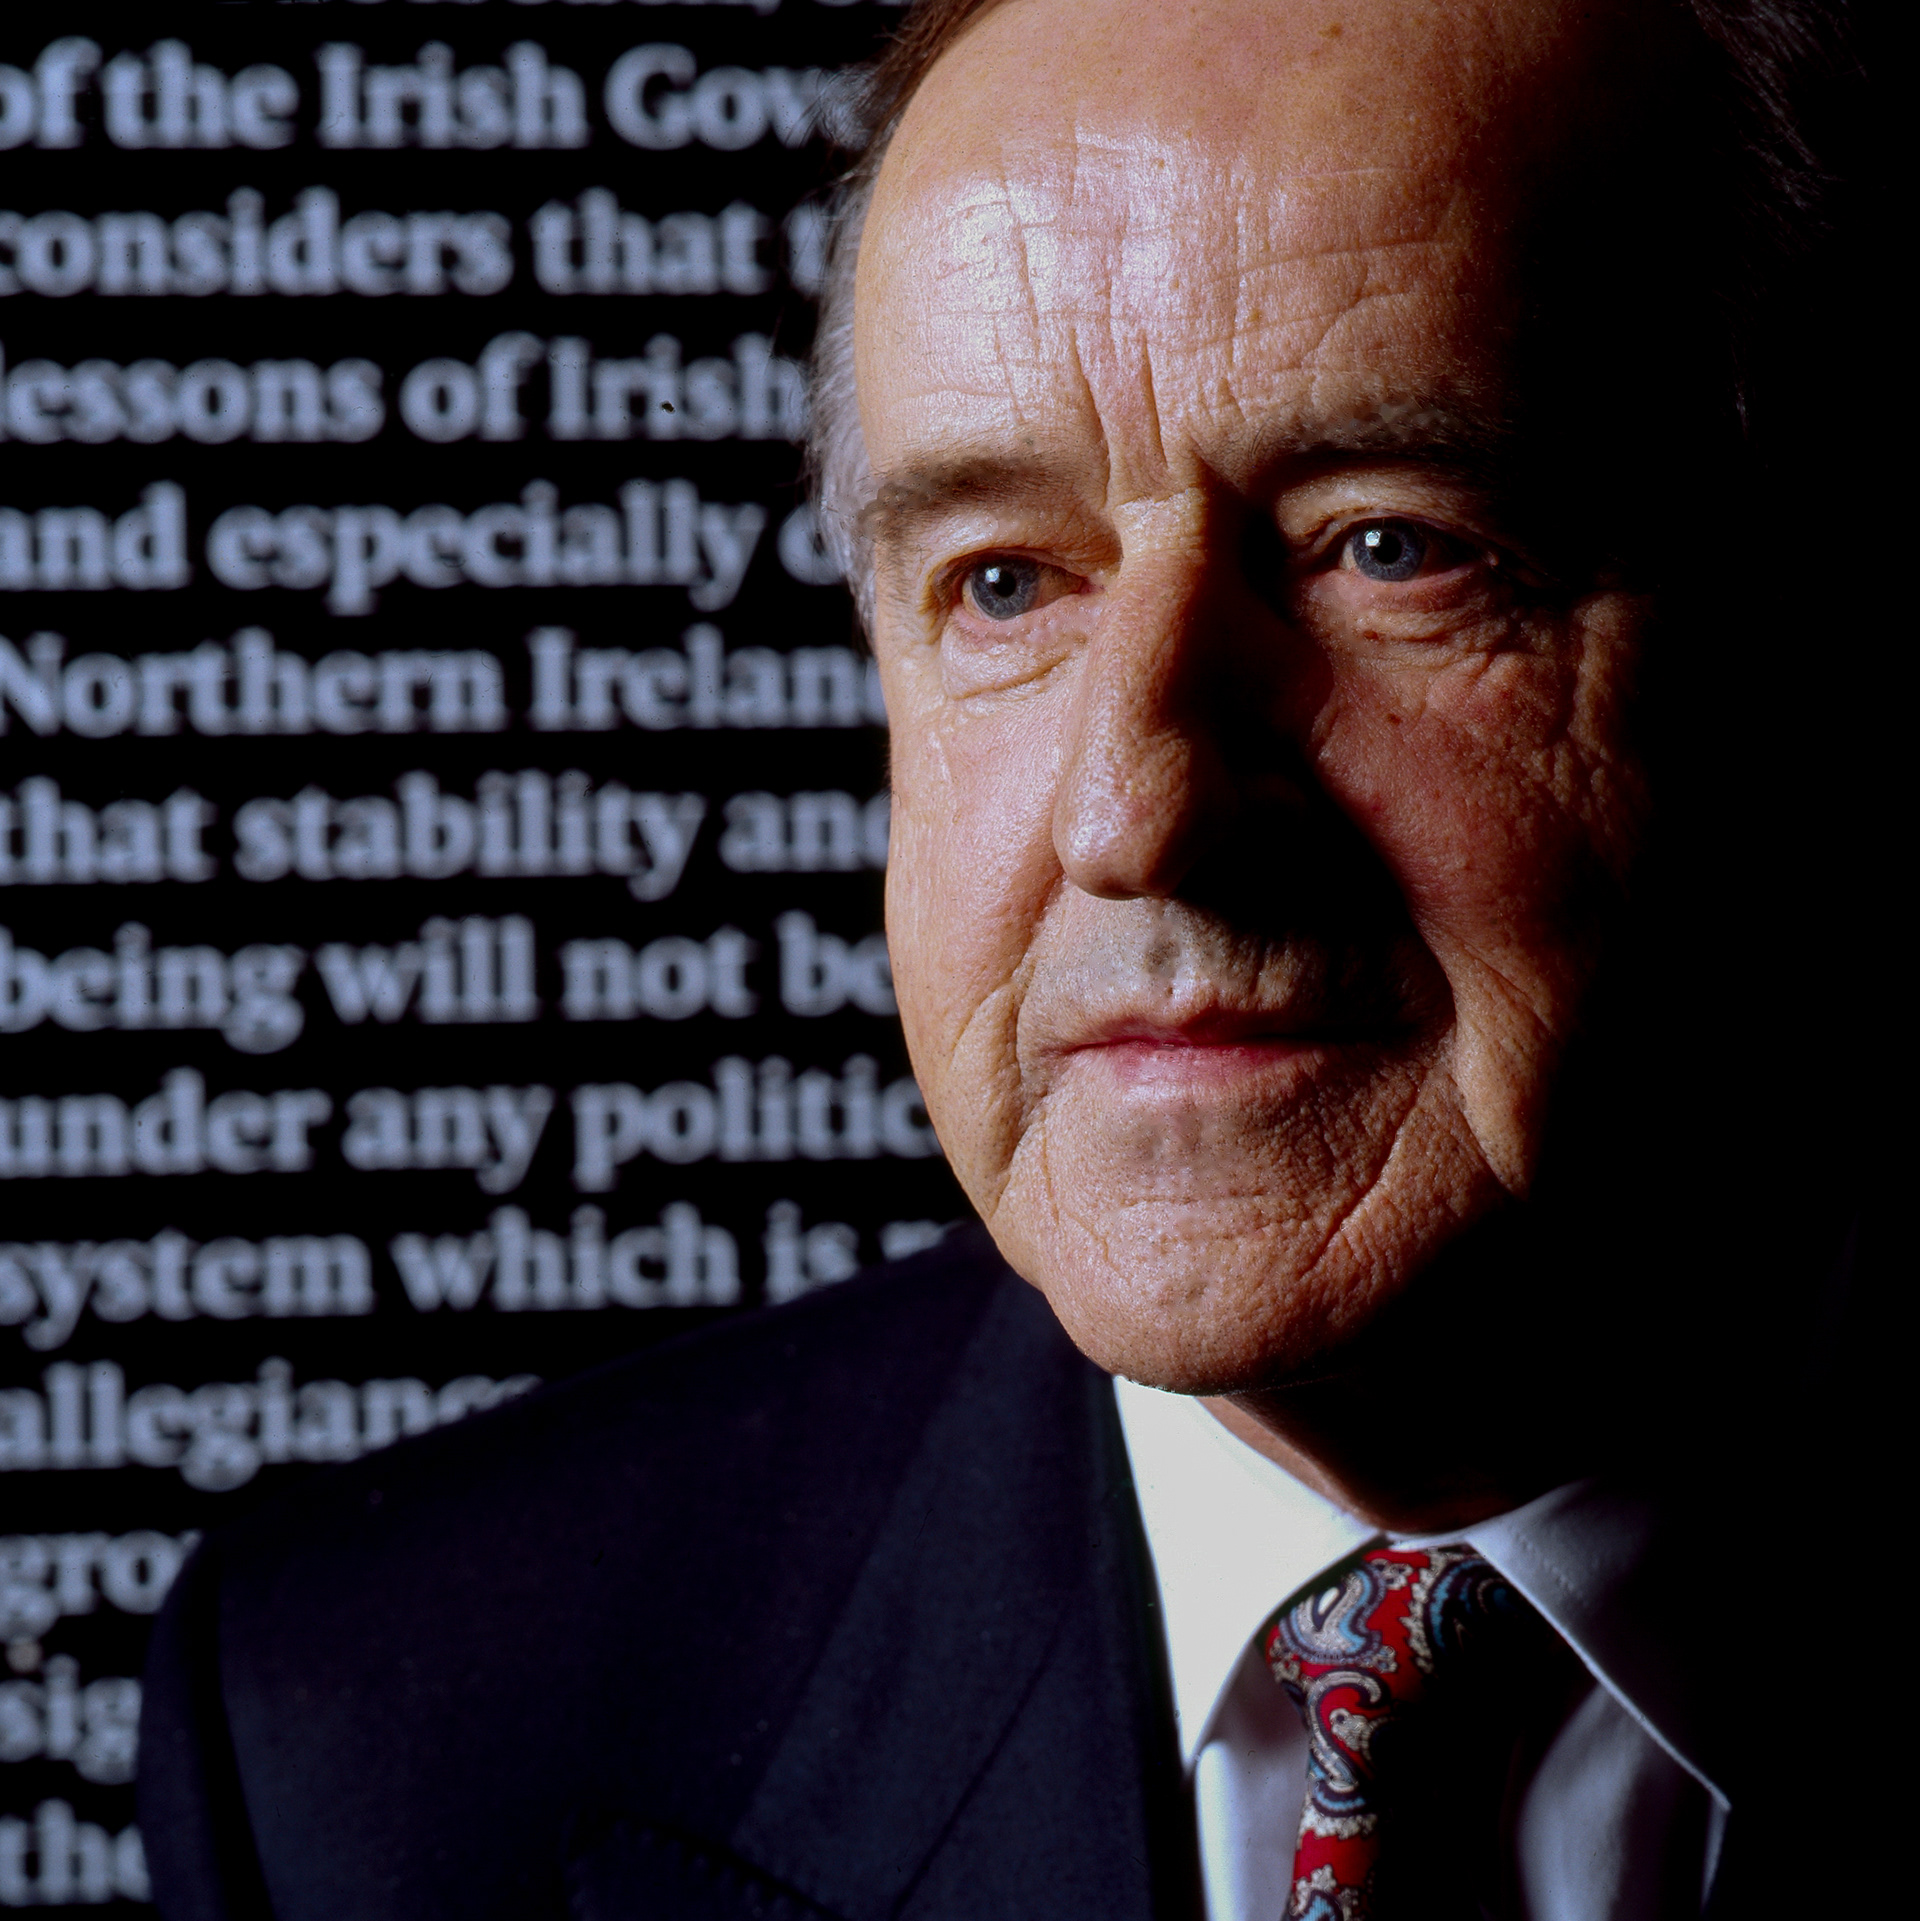 Albert Reynolds, 9th Taoiseach of Ireland, for the Sunday Tribune.